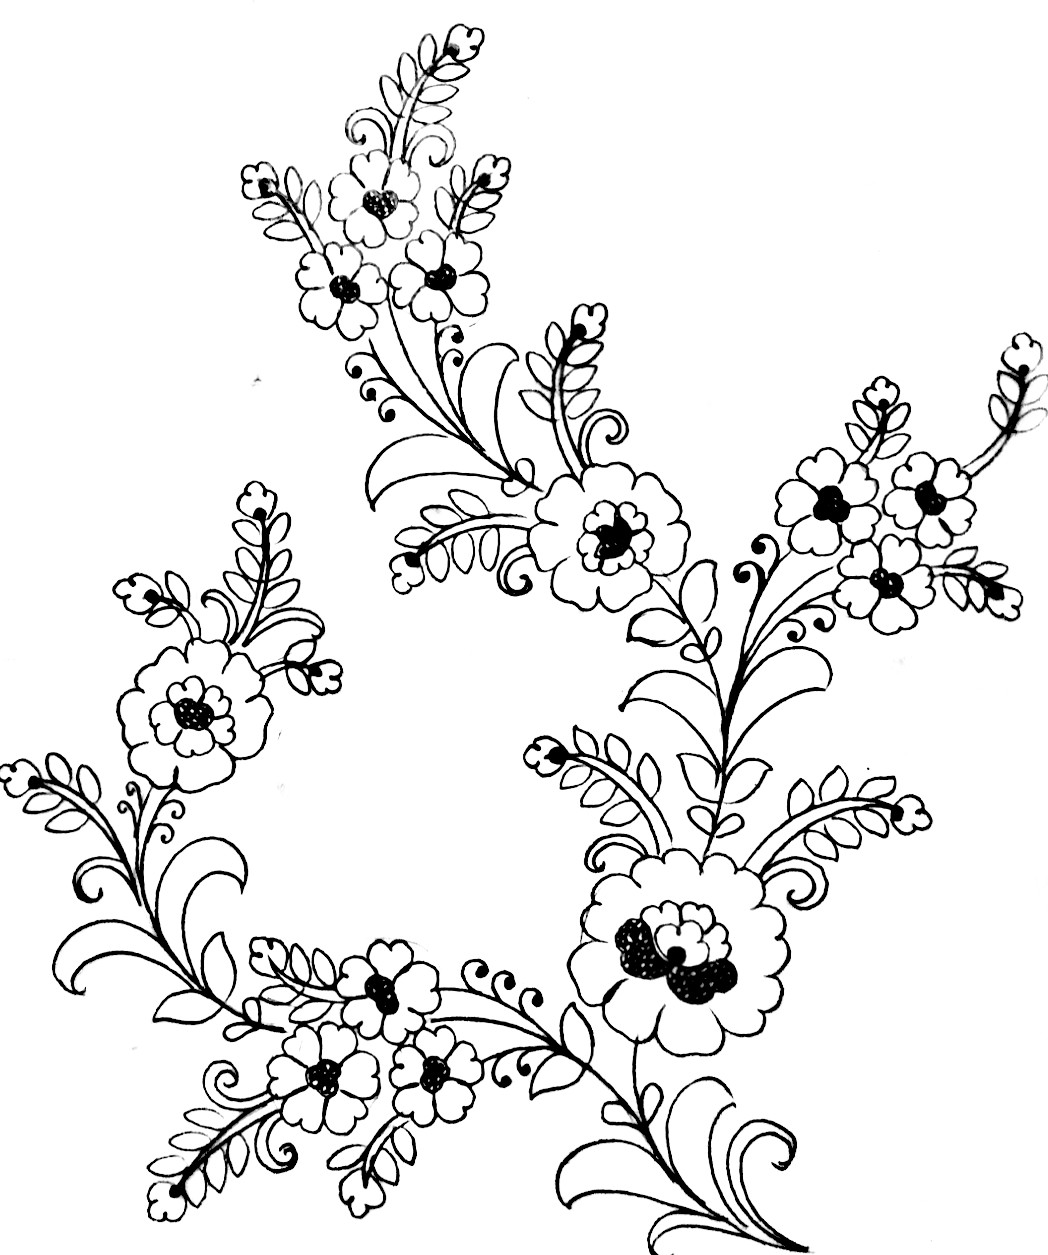 How to draw flower design on paper/flower design images drawing/flower embroidery design to draw.